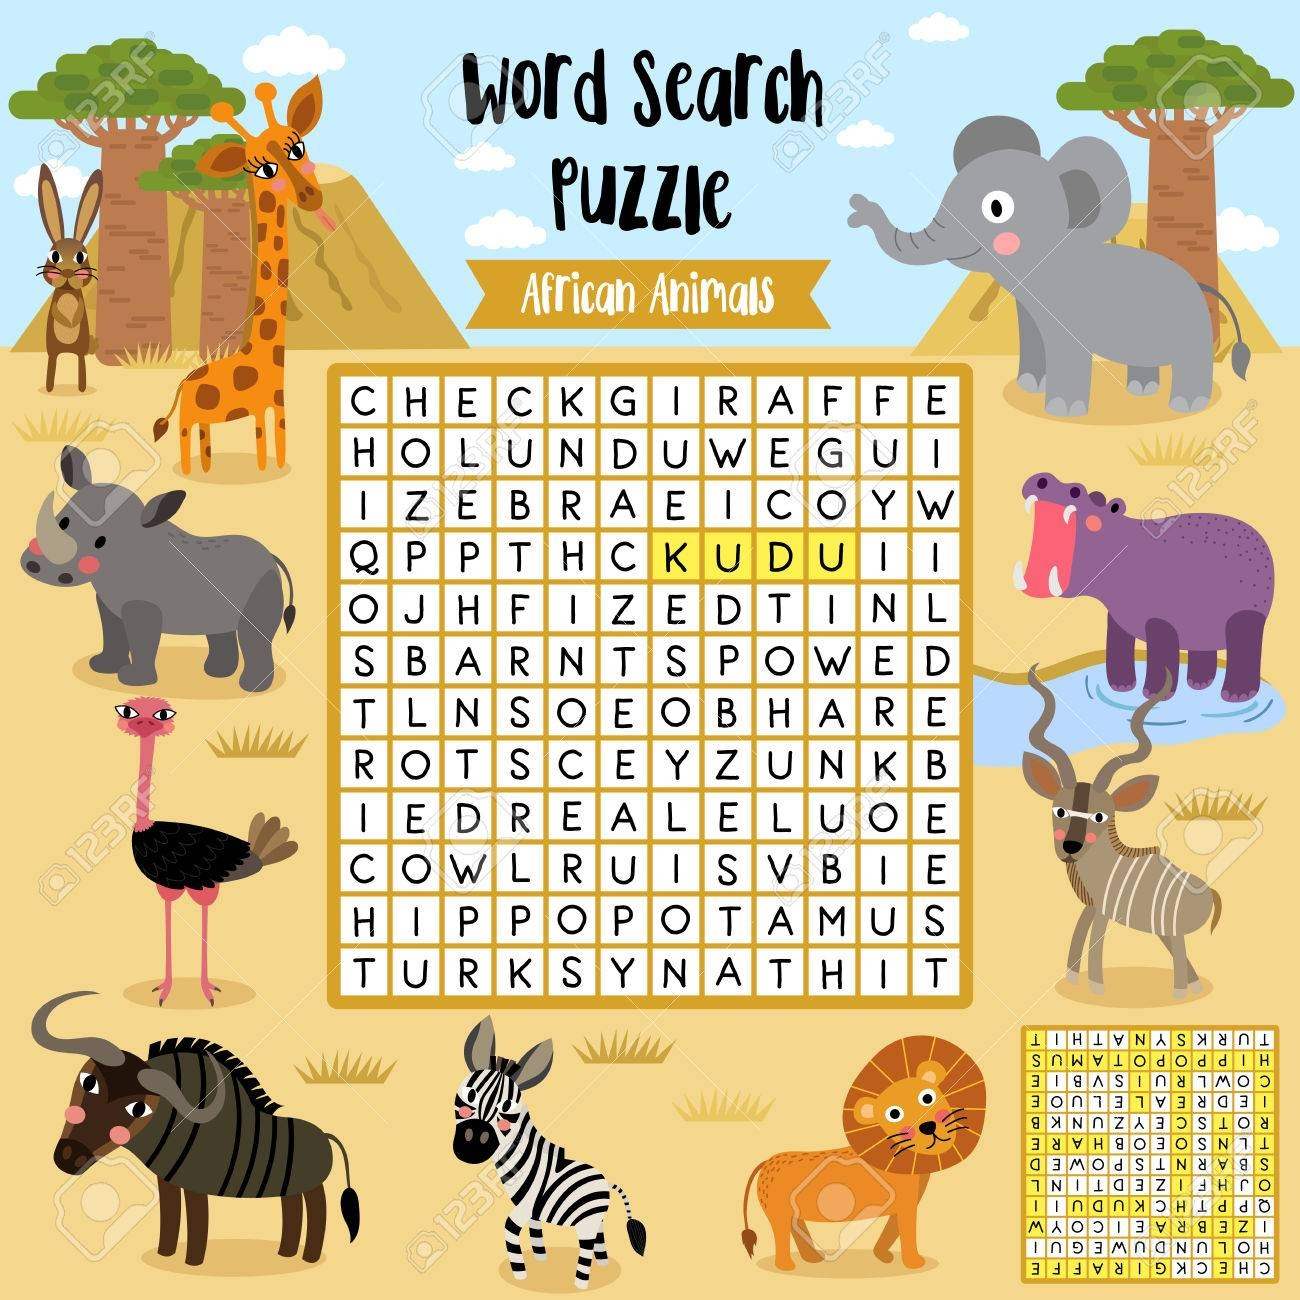 Words Search Puzzle Game Of African Animals For Preschool Kids - Free Printable Animal Puzzles